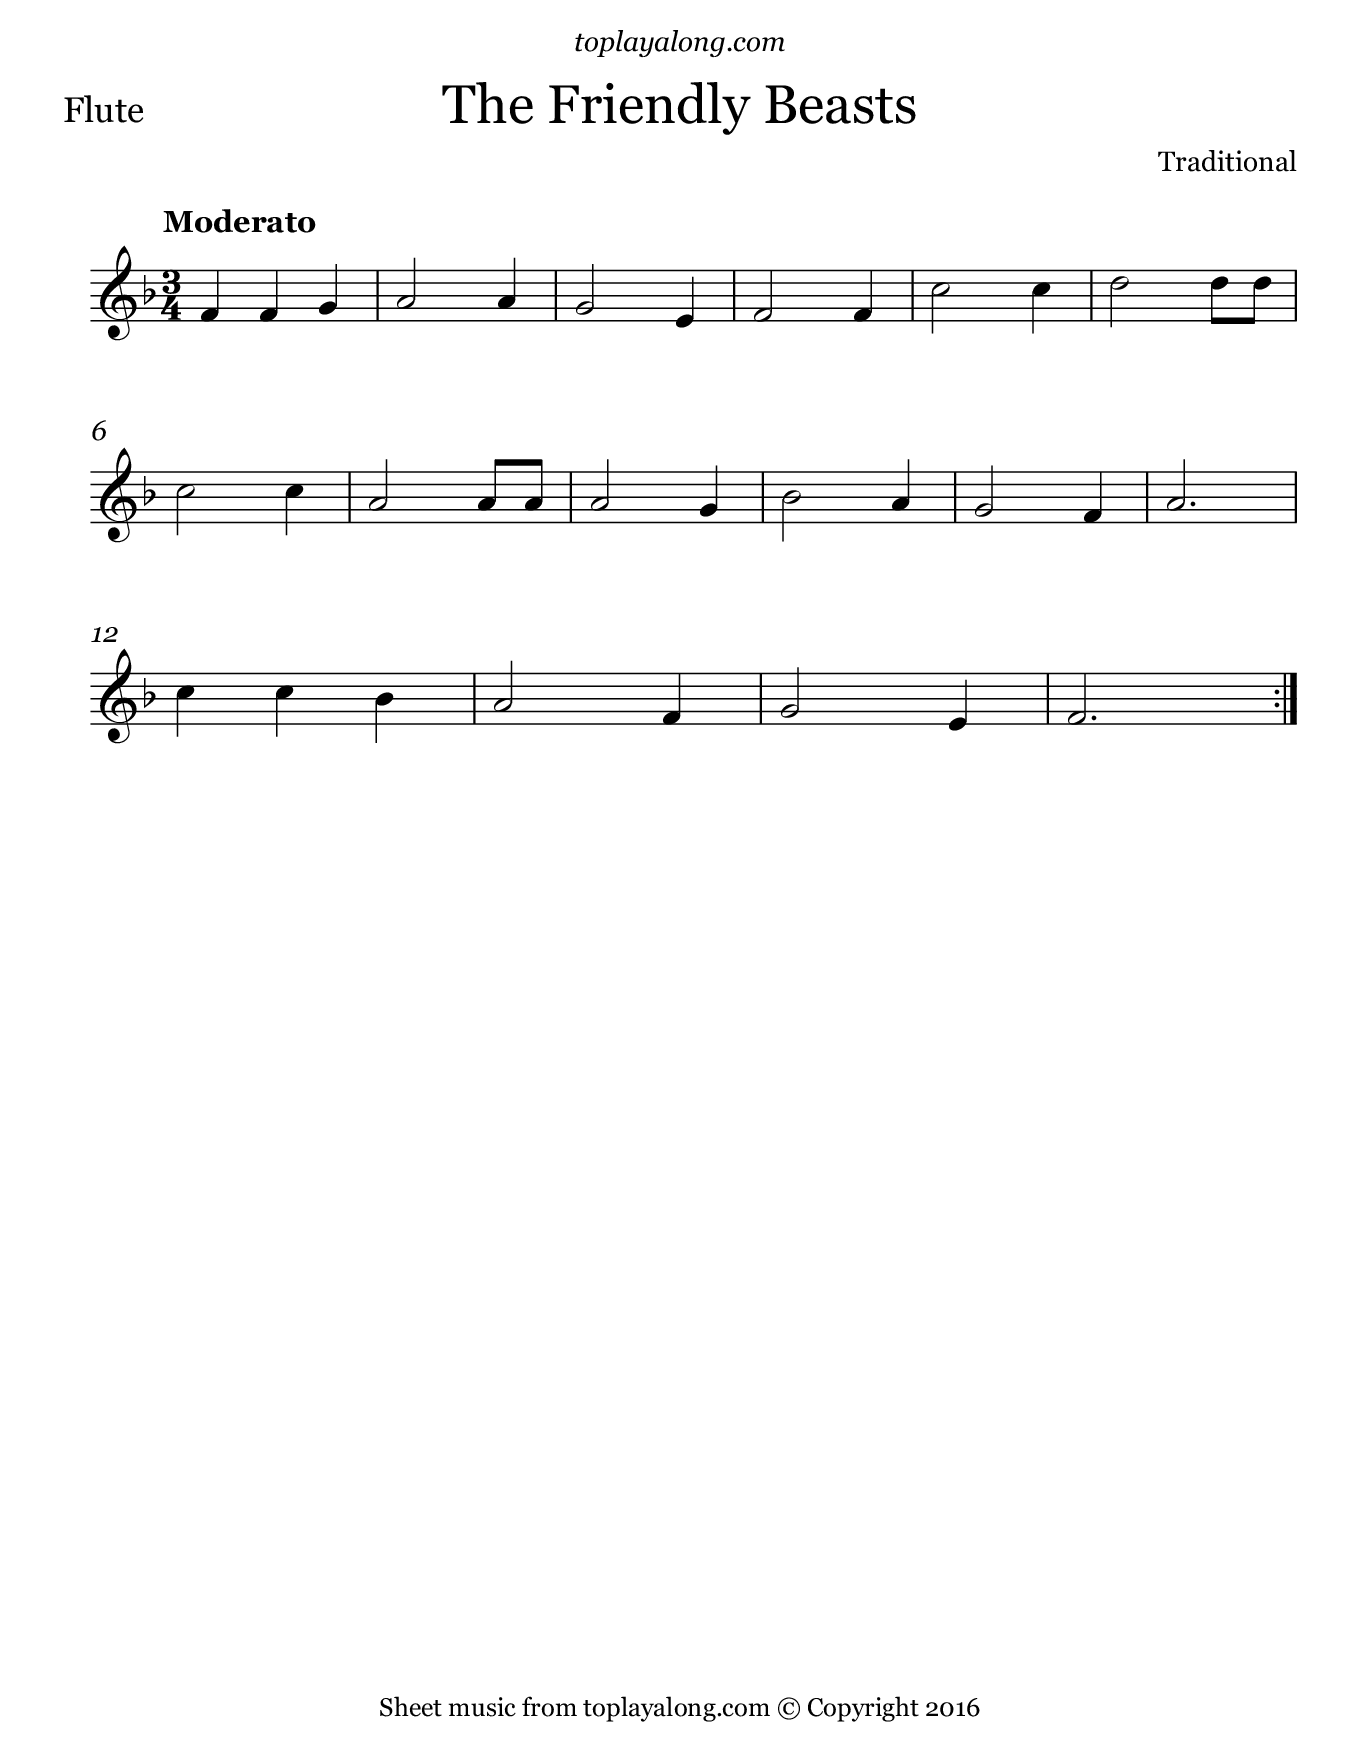 The Friendly Beasts. Sheet music for Flute, page 1.